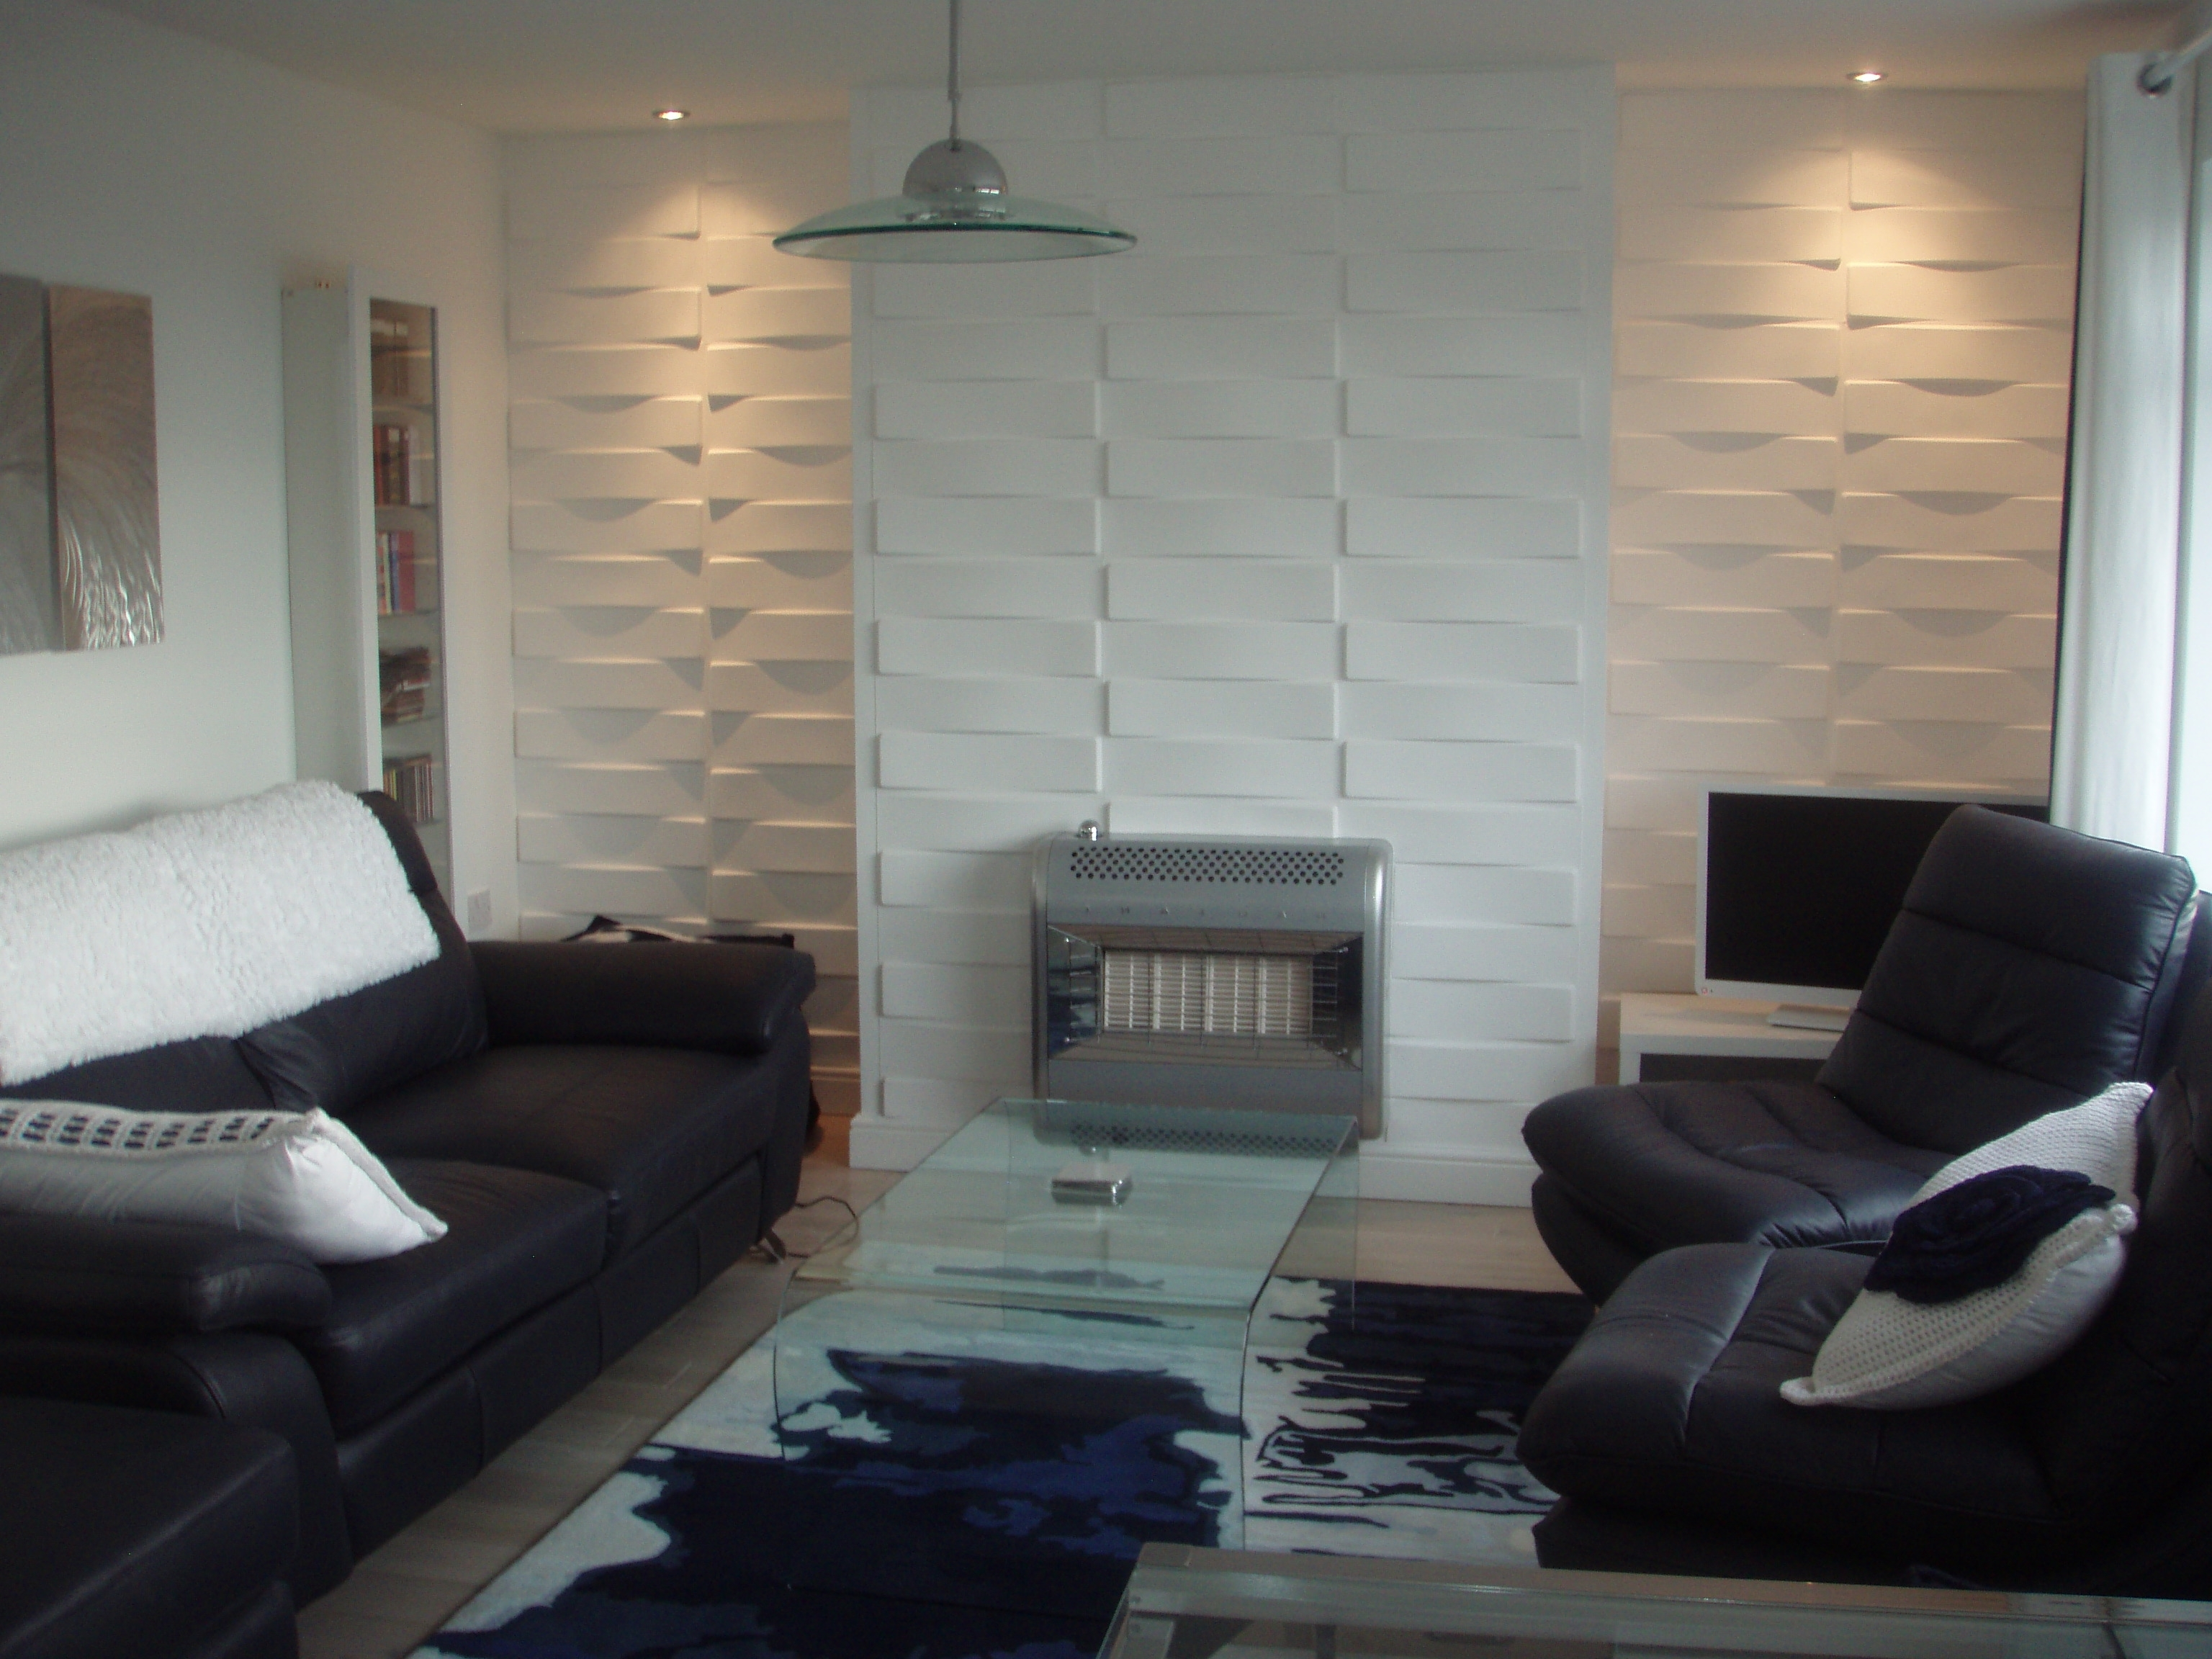 Daisy Decorating & Design With Regard To Most Up To Date Painting 3D Wall Panels (View 3 of 15)